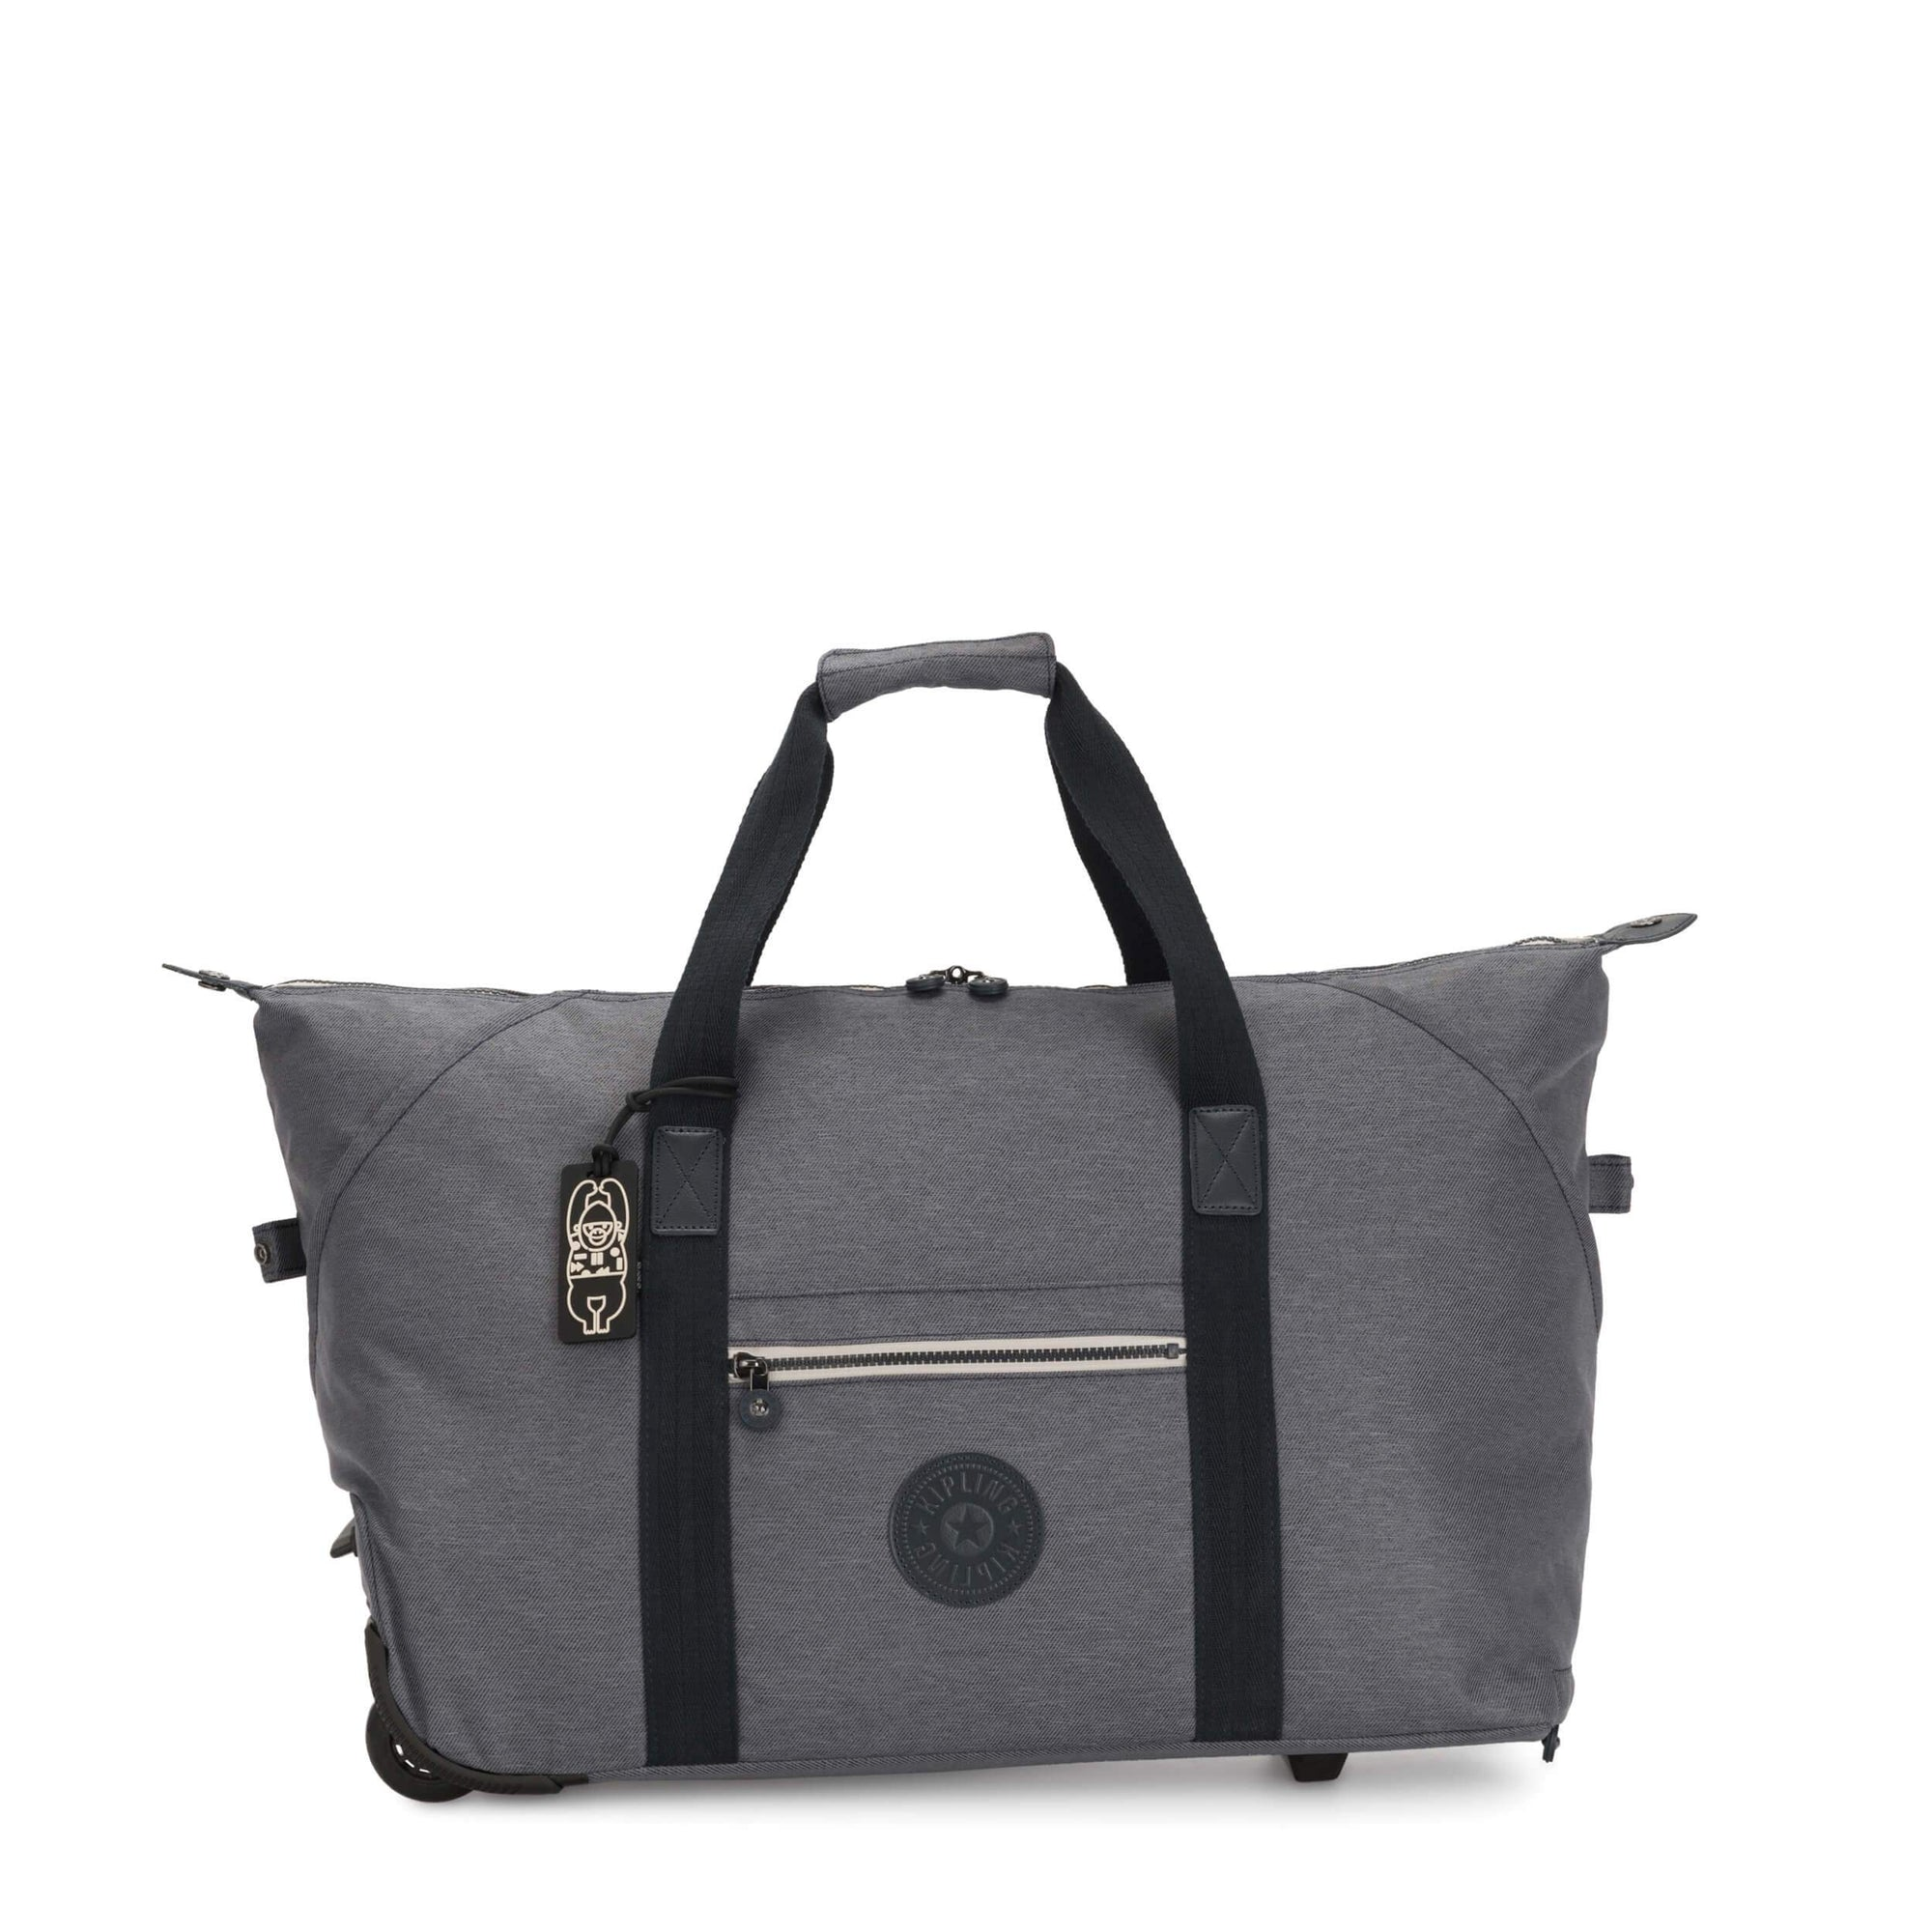 Maleta Kipling Art On Wheels Charcoal KI292129V